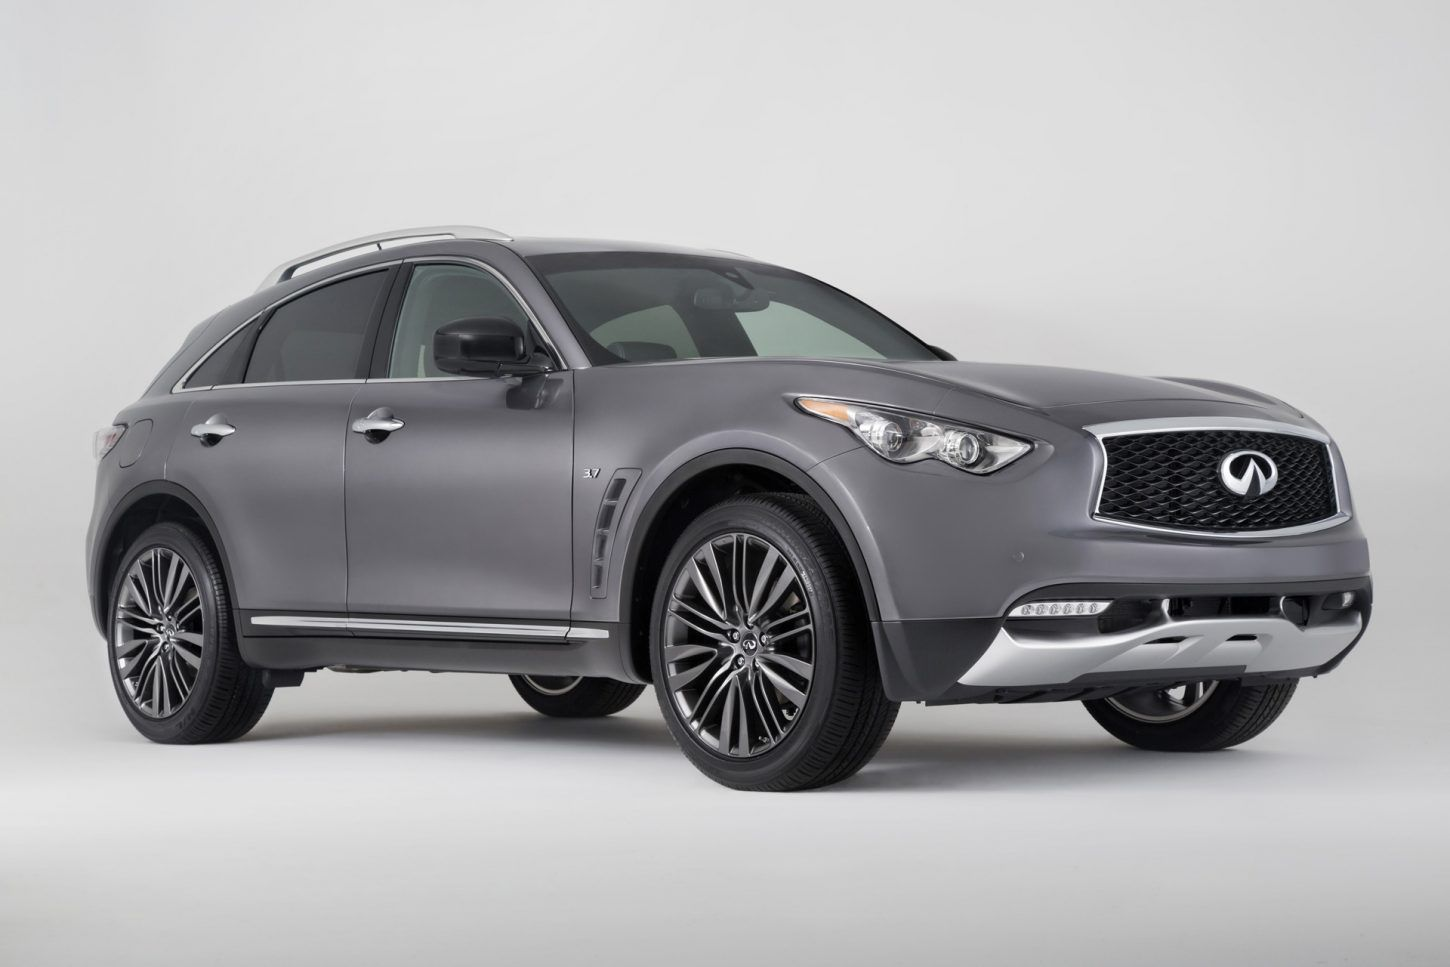 2020 Infiniti QX70 Review, Release Date, Price, Engine